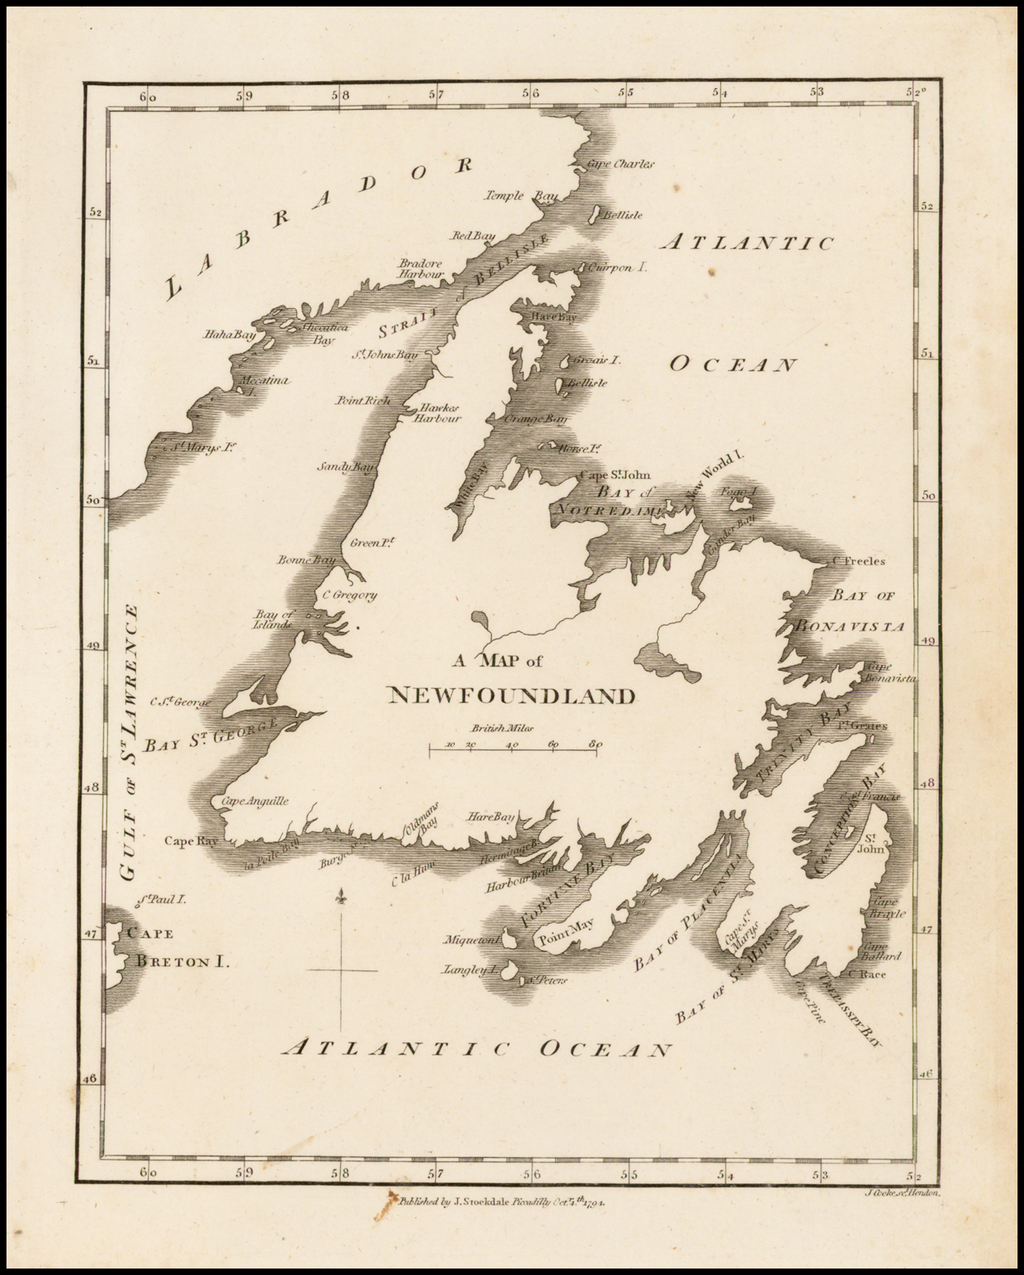 A Map of Newfoundland By John Stockdale